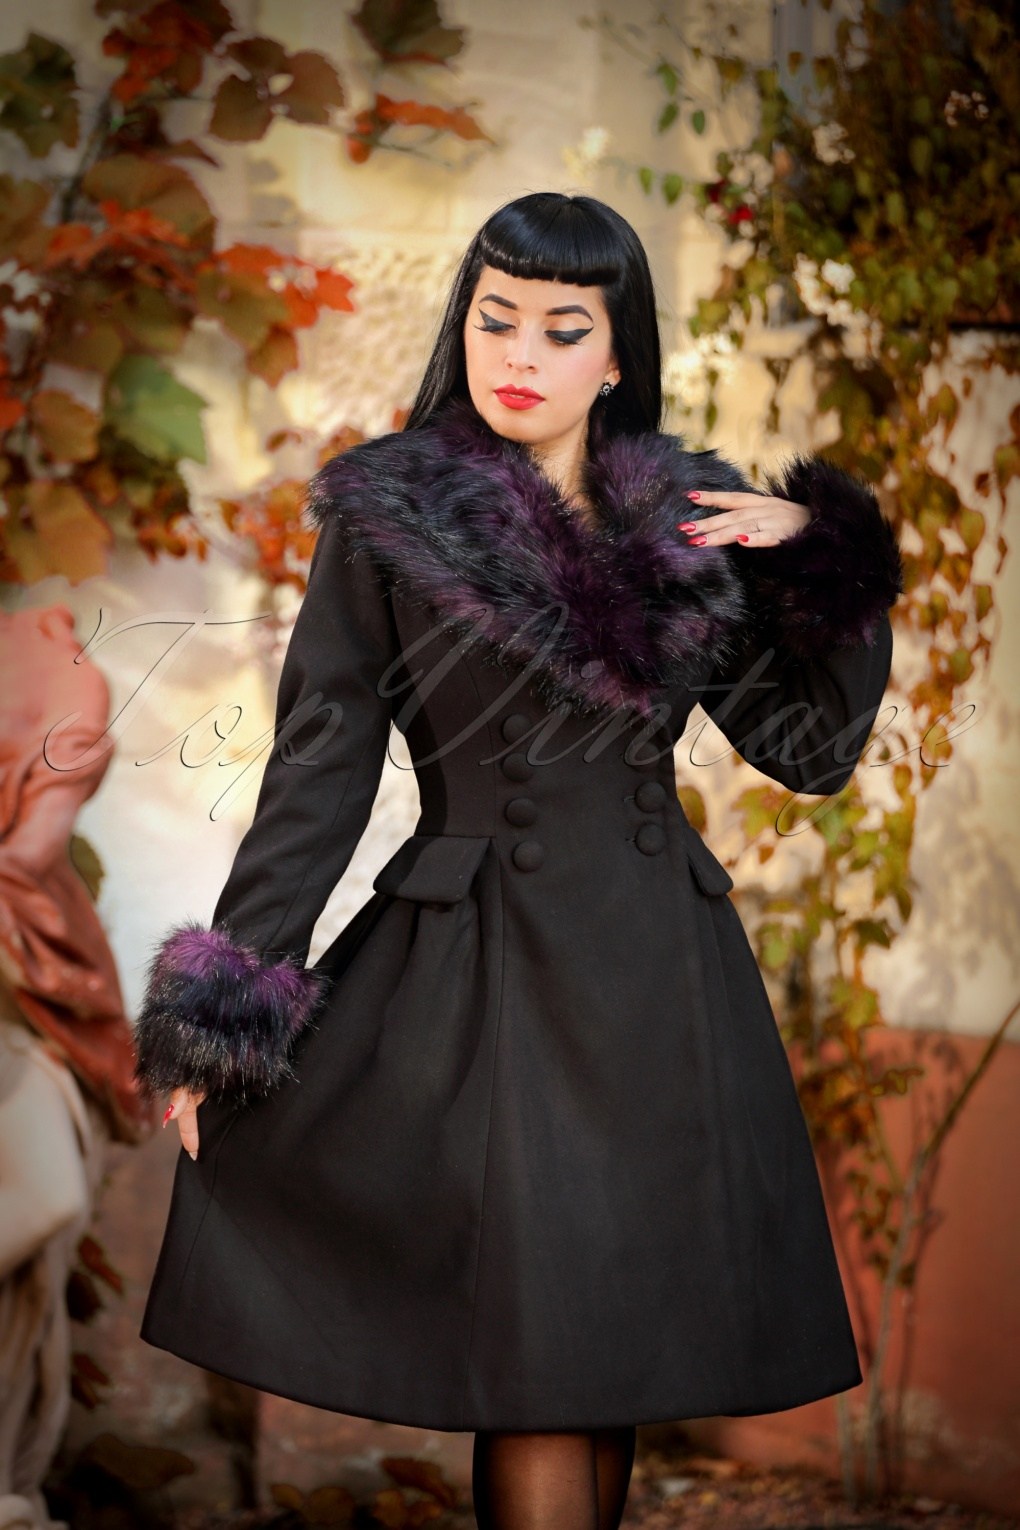 1950s Jackets, Coats, Bolero | Swing, Pin Up, Rockabilly 50s Rock Noir Coat in Black and Purple £107.75 AT vintagedancer.com